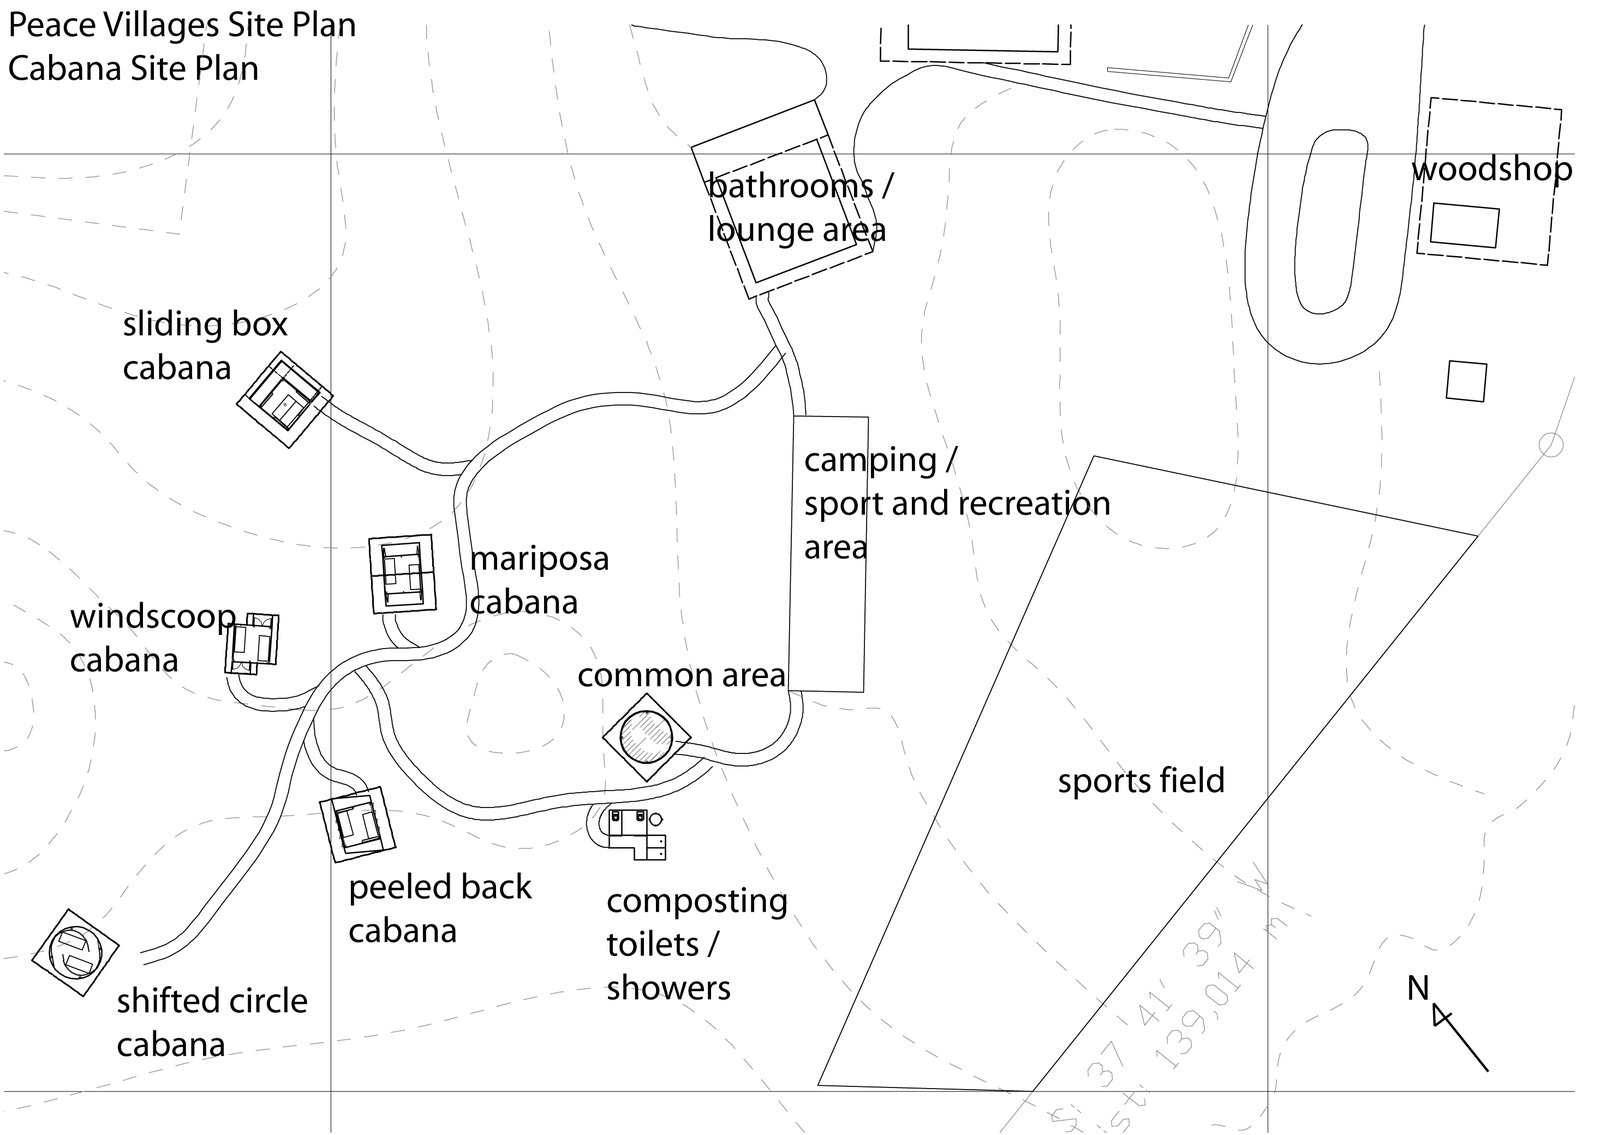 A site plan for the Peace Villages shows the placement of the cabanas and various other amenities and community areas. Venezuela's Eco Cabanas - Photo 11 of 13